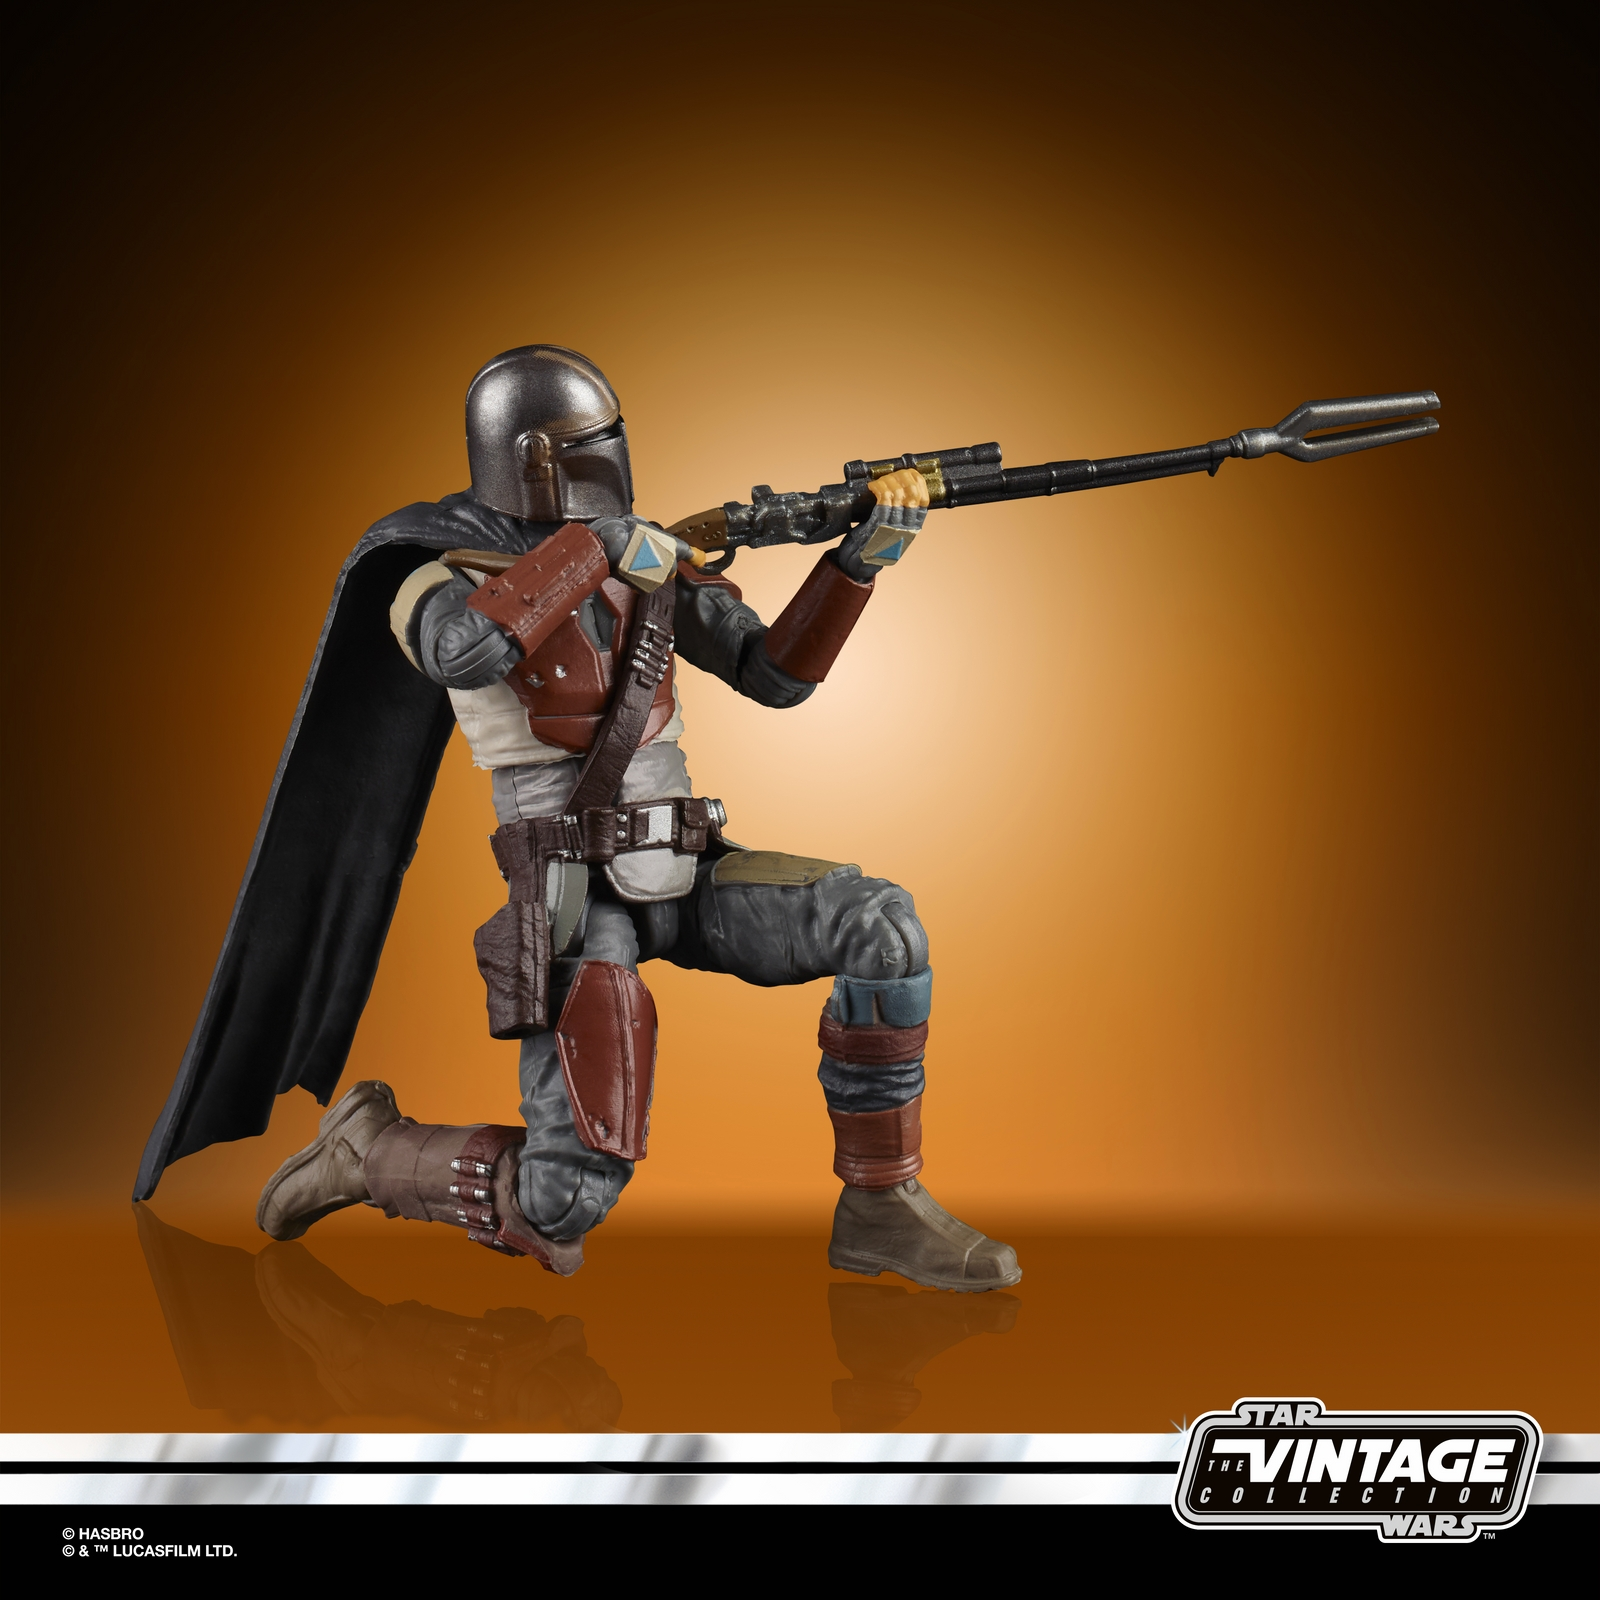 STAR%20WARS%20THE%20VINTAGE%20COLLECTION%203.75-INCH%20THE%20MANDALORIAN%20Figure%20-%20oop(3).jpg